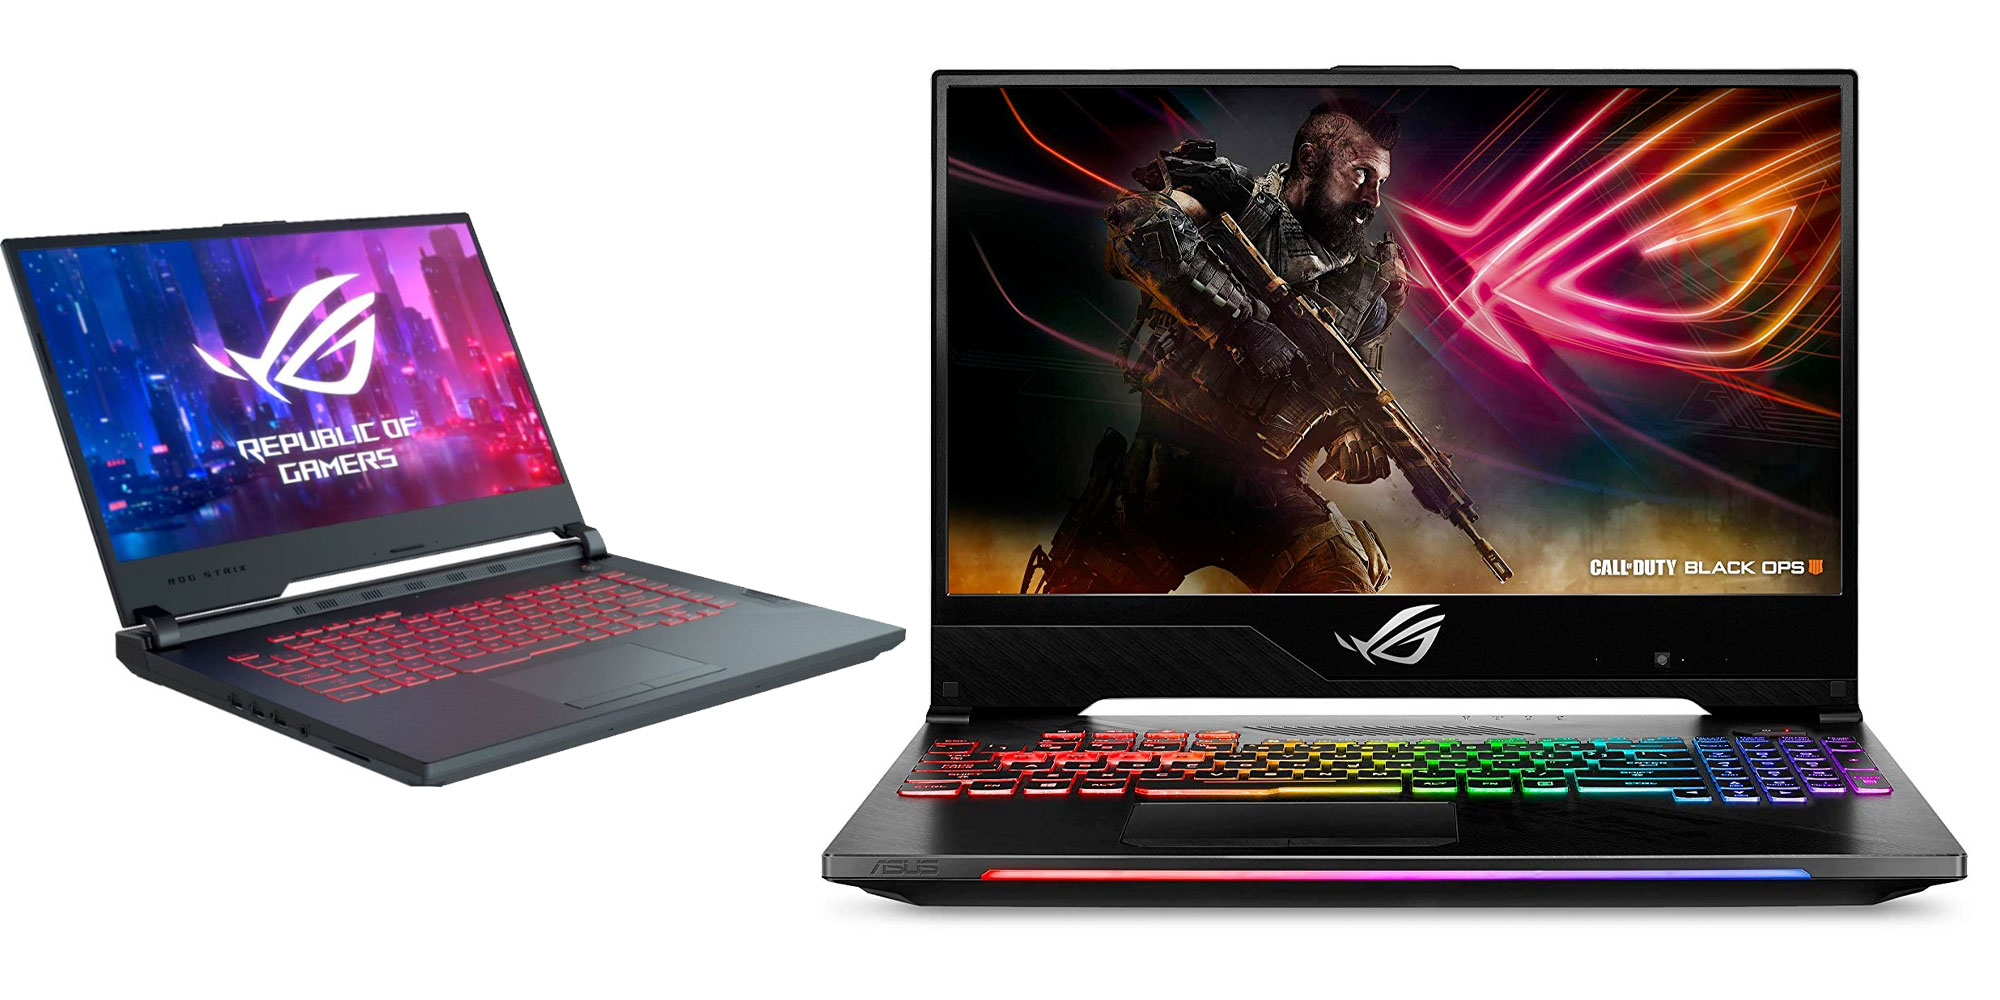 Laptops from $800: ASUS ROG 6-core i7 $850, Lenovo ThinkPad w/ Dolby Vision $850, more